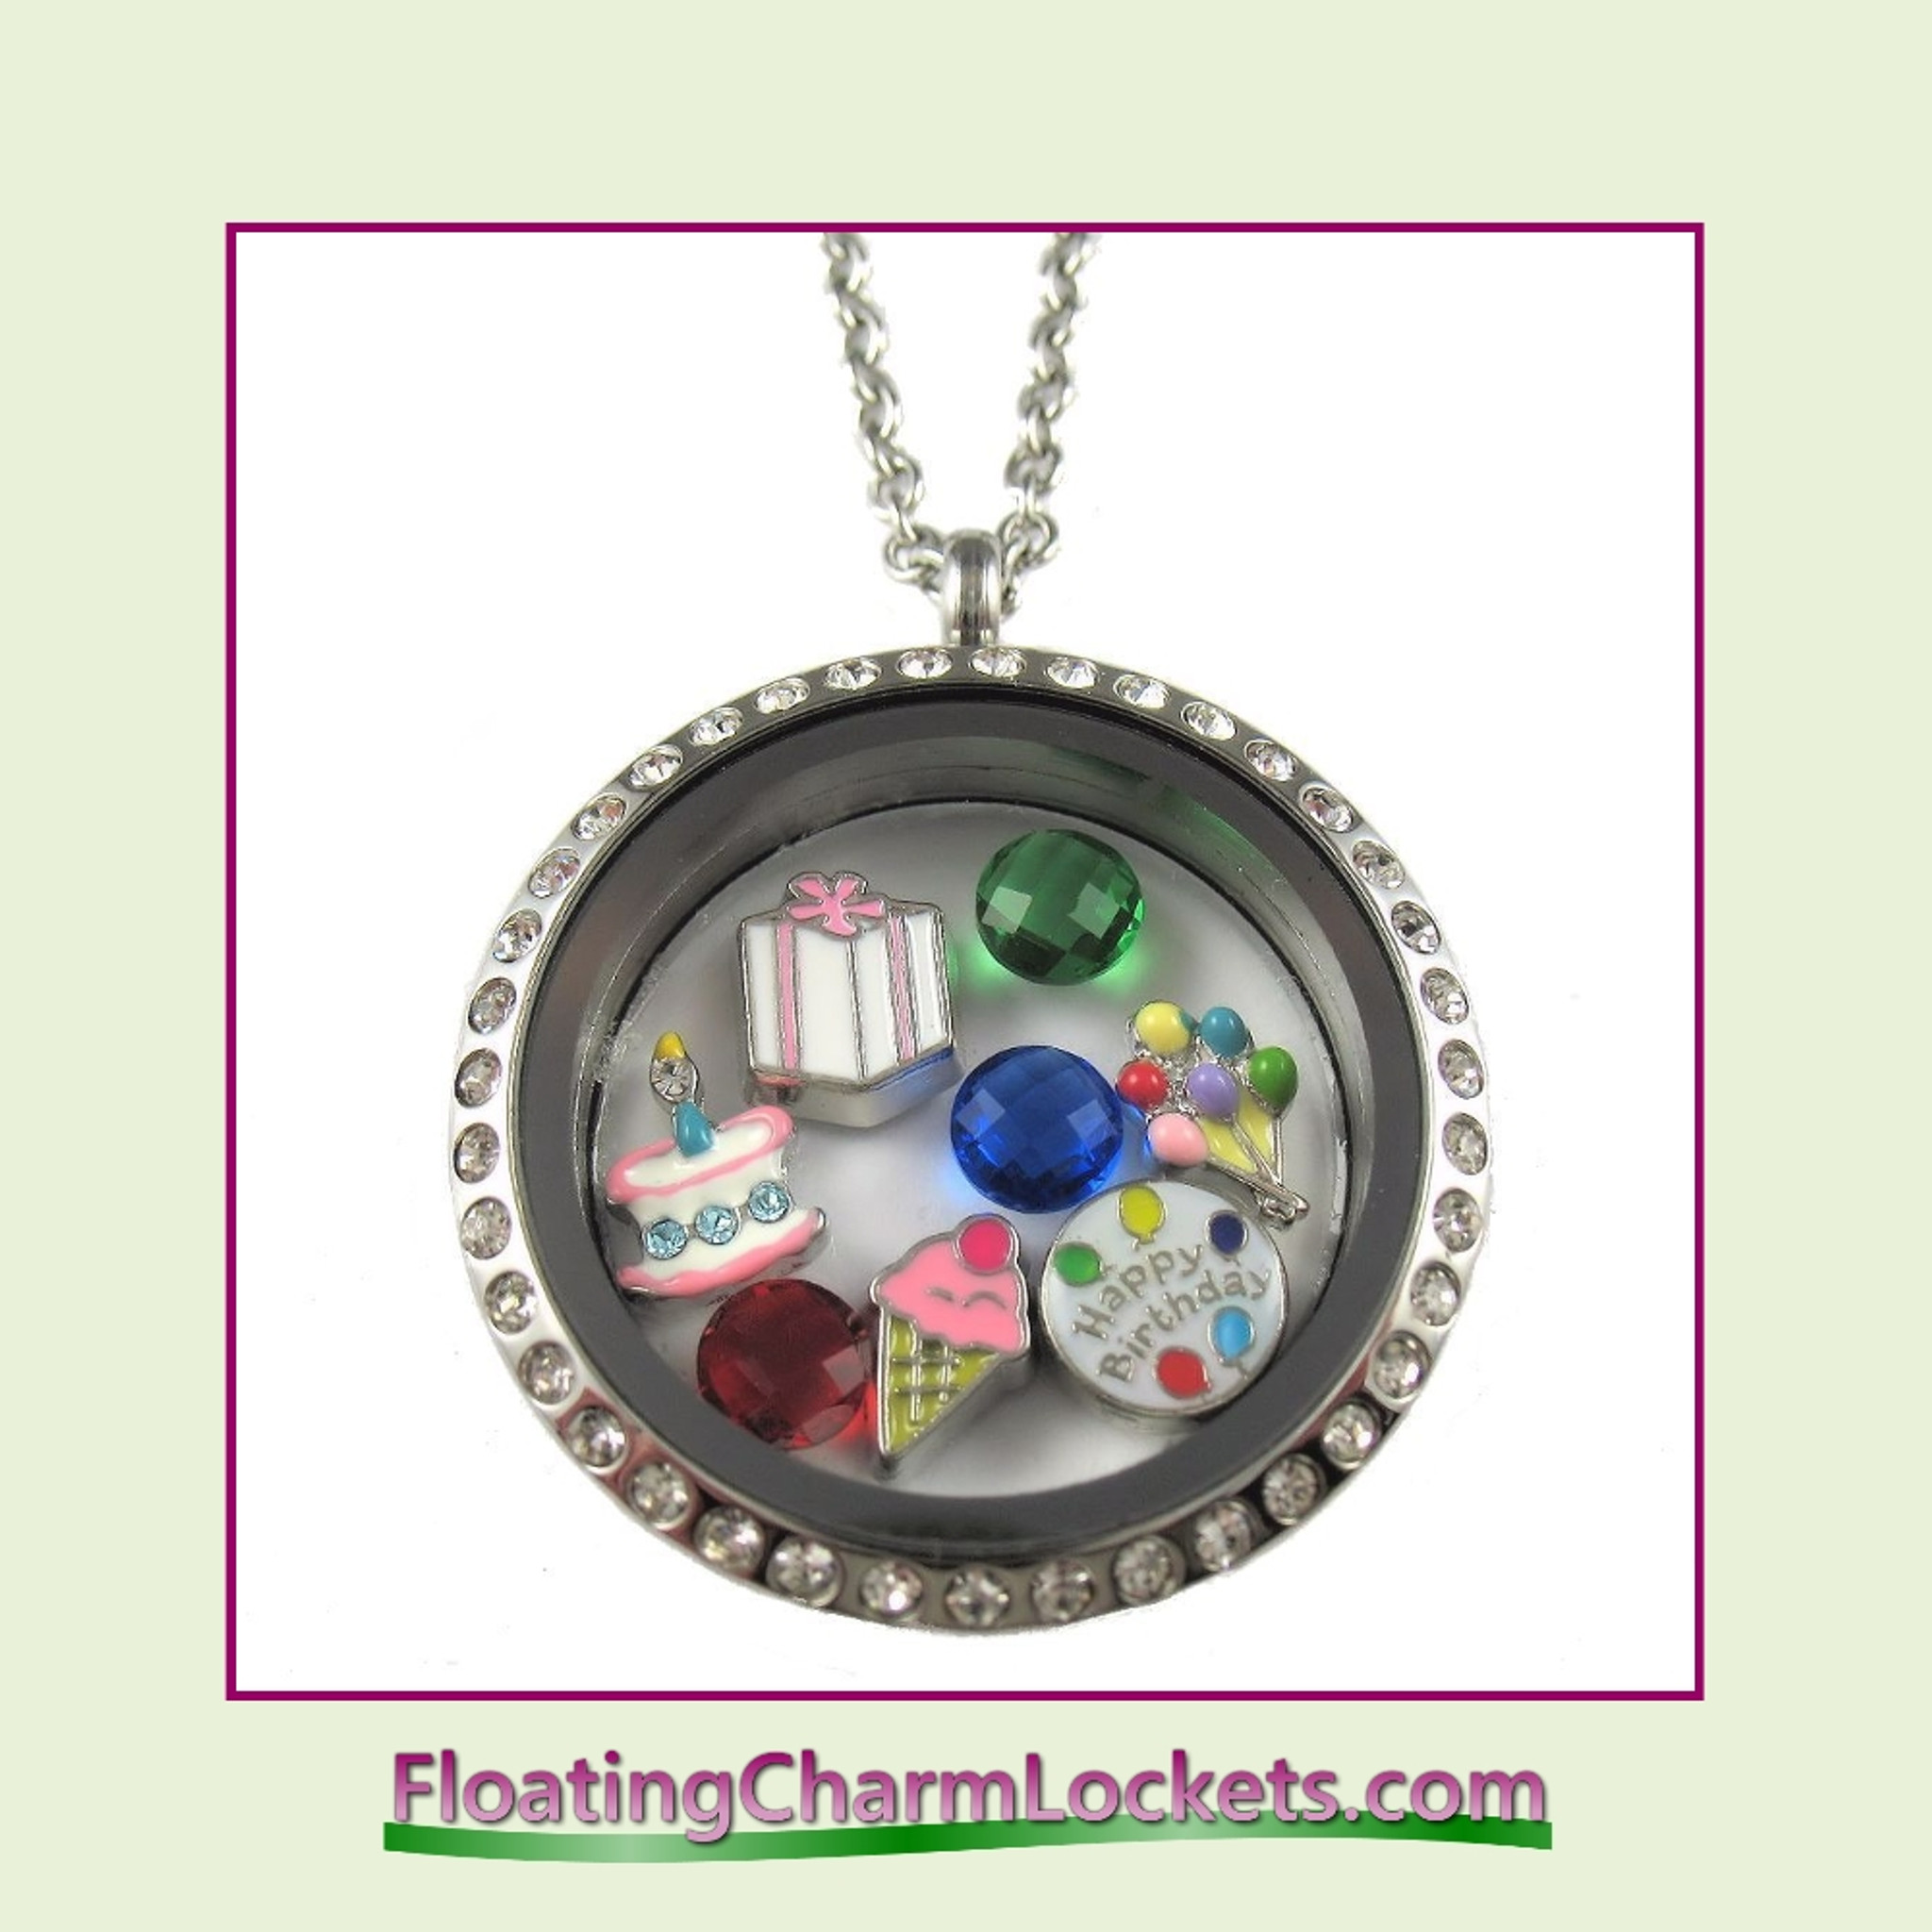 fit hei co lockets chain fmt sterling pendant g locket pendants tiffany wid silver necklaces id a jewelry constrain on heart ed m in